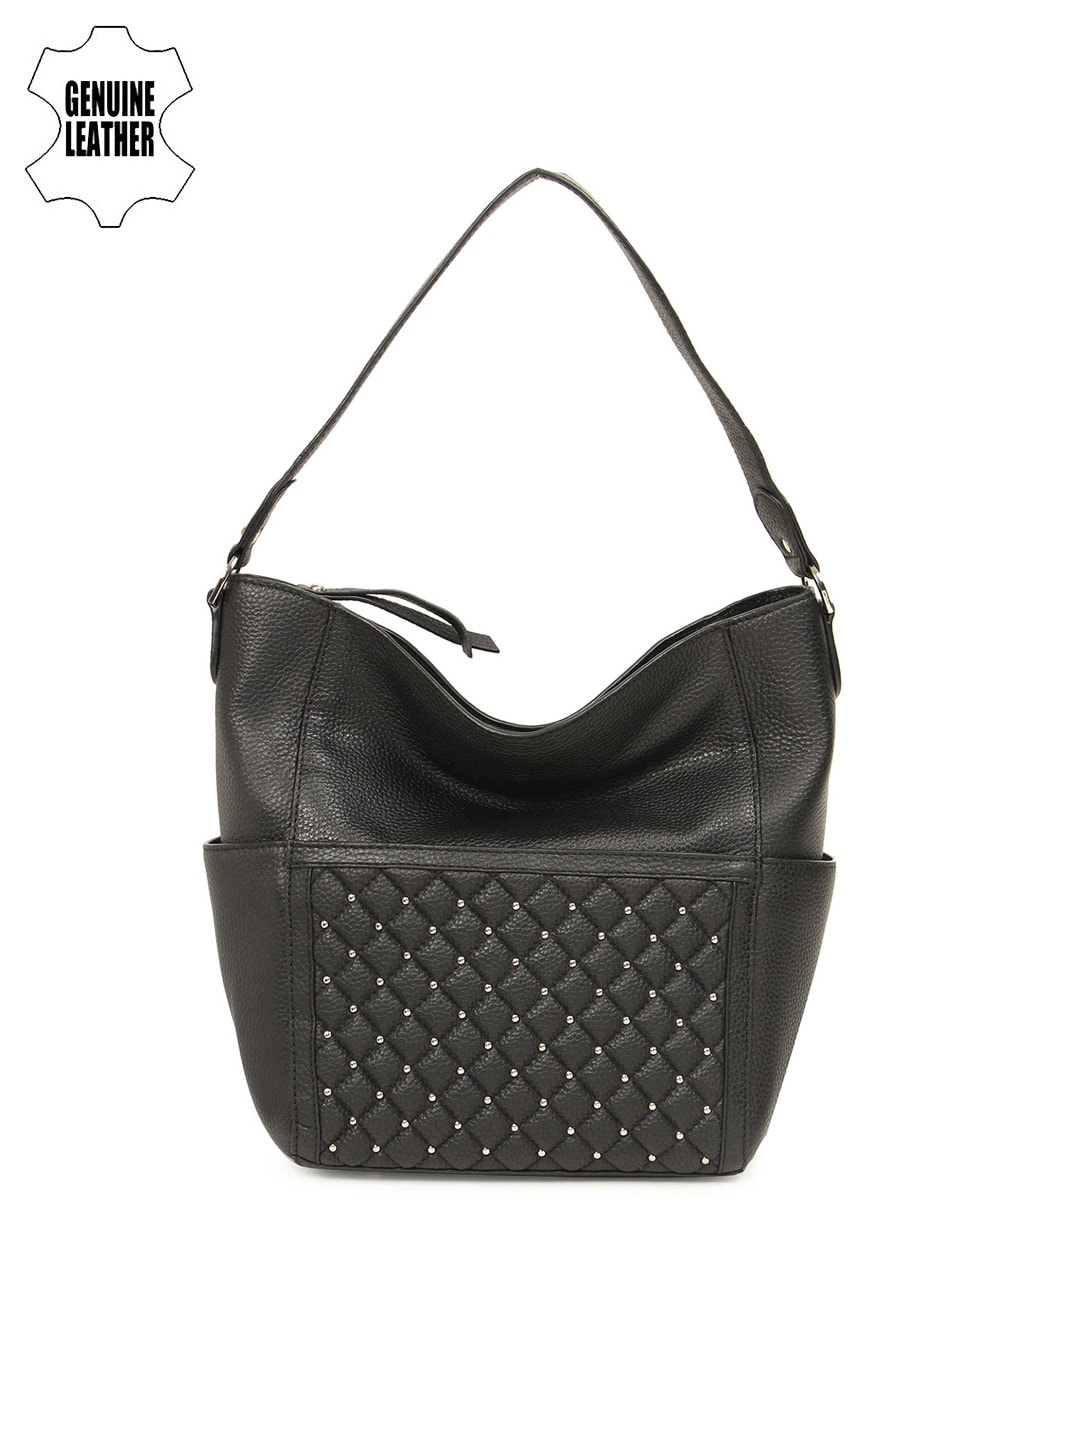 aeca074e21b0 Hobo Bags Handbags - Buy Hobo Bags Handbags online in India